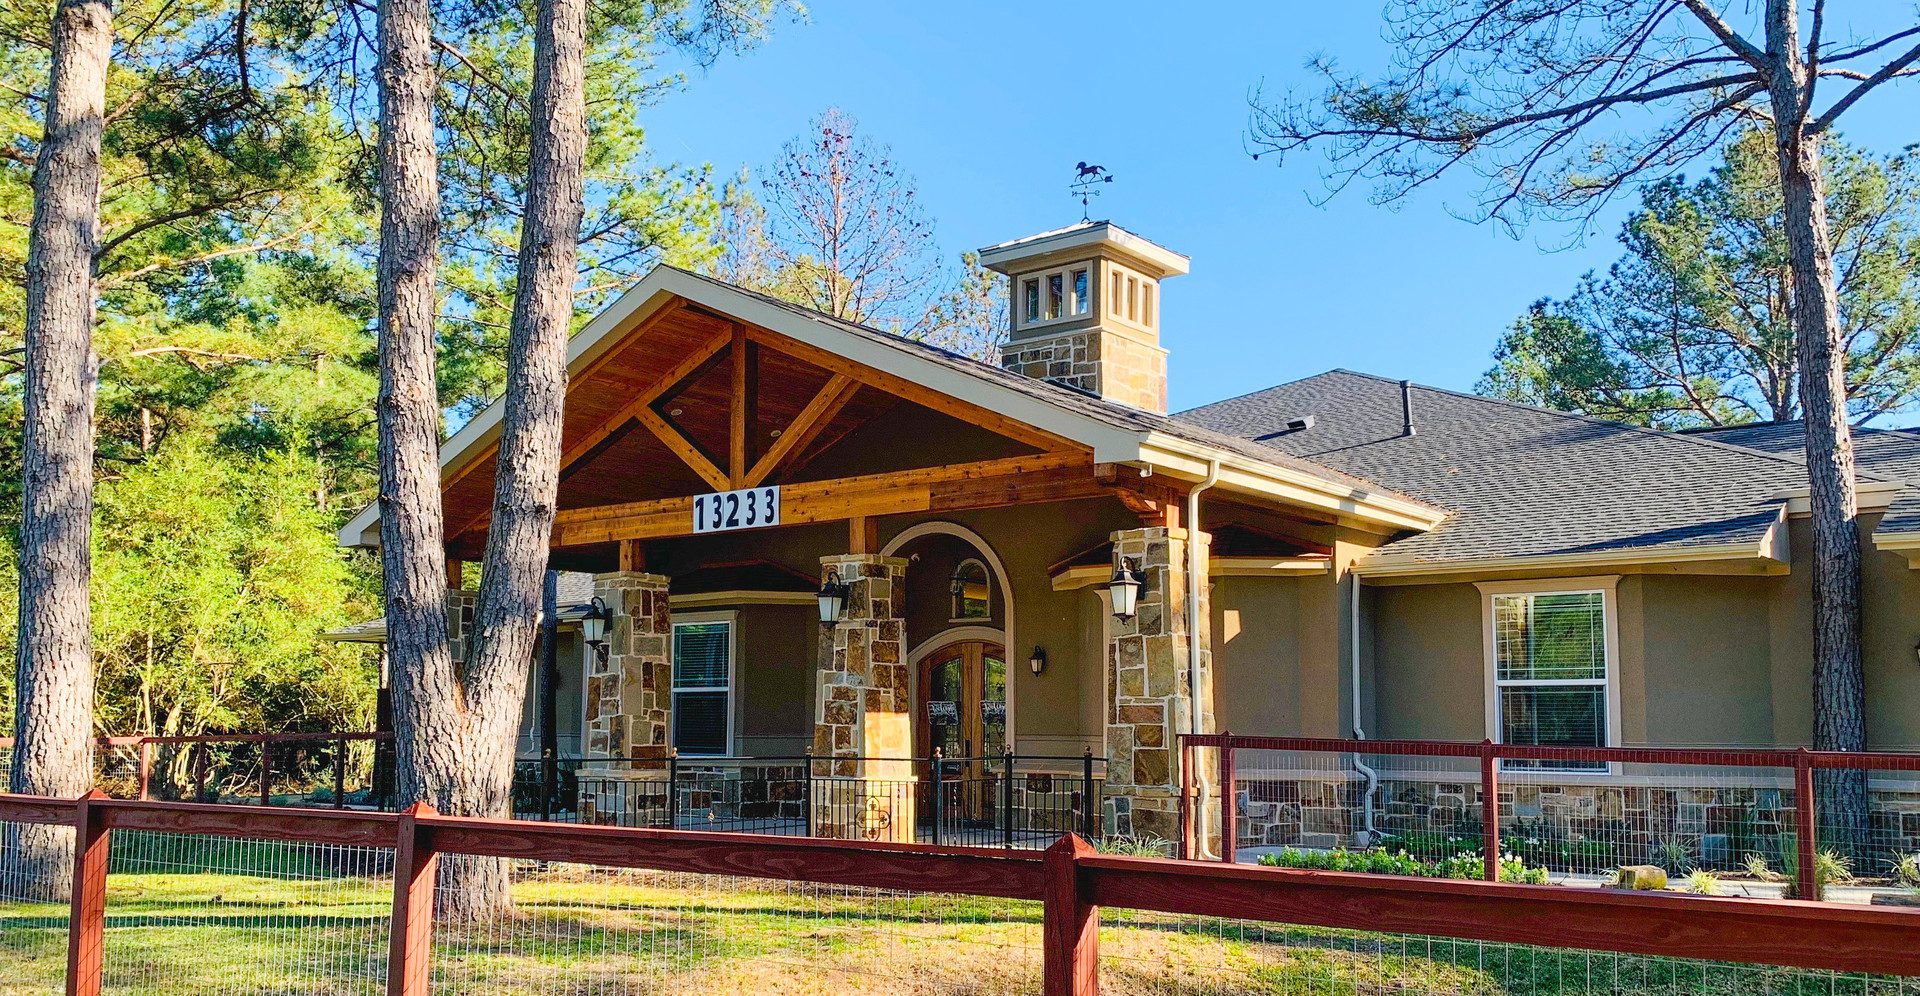 Village Green Alzheimer's Care Home Tomball